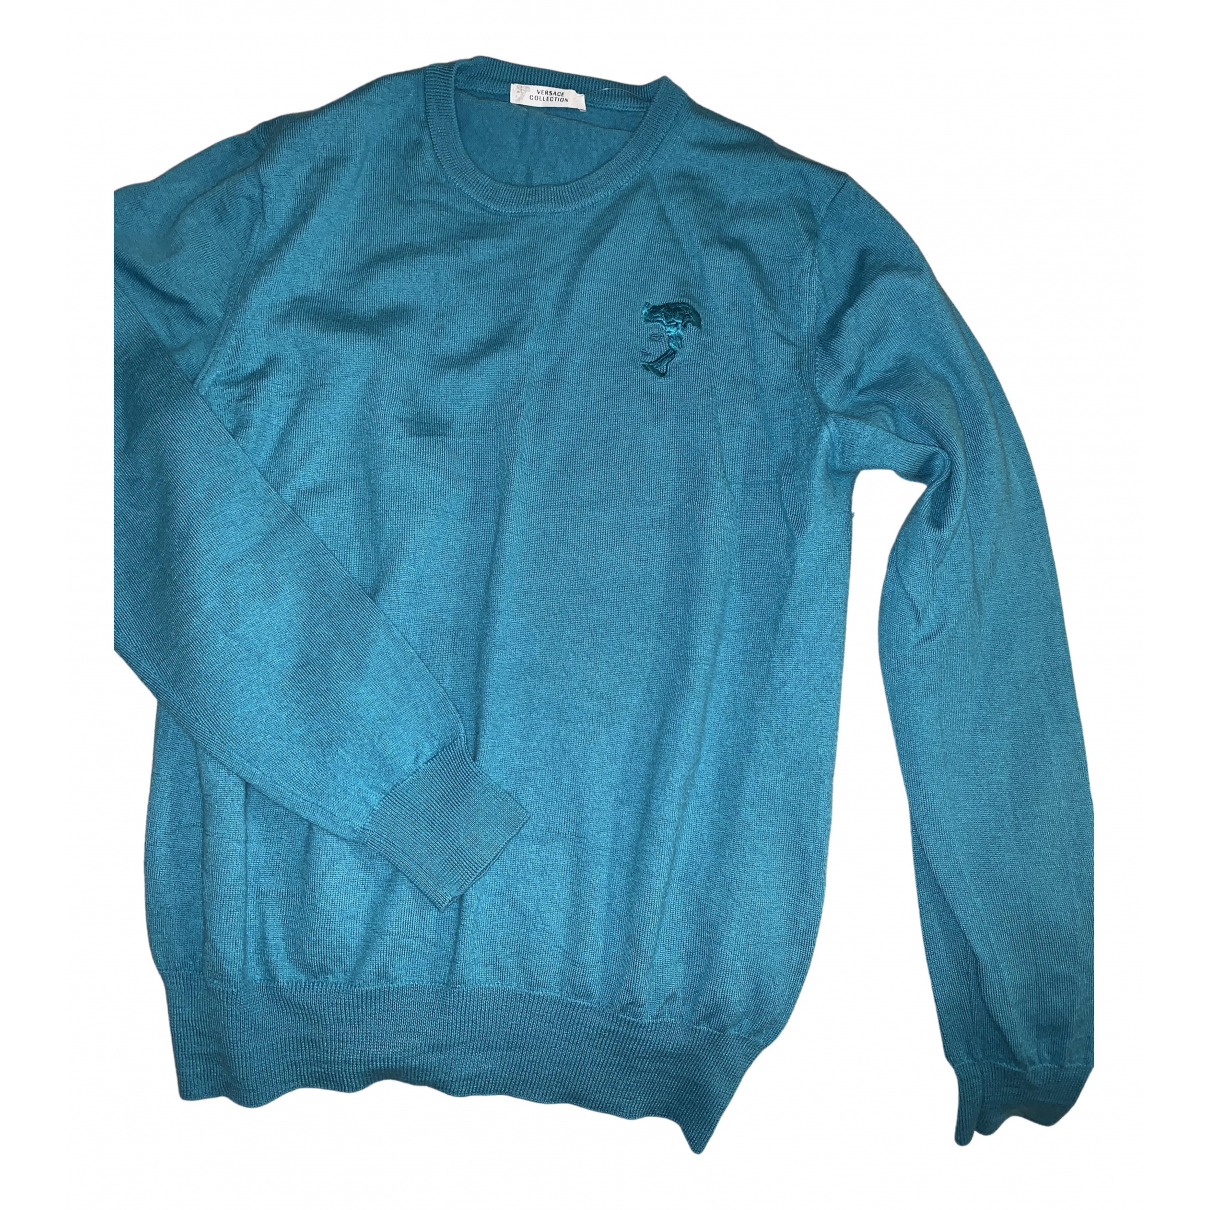 Versace N Turquoise Wool Knitwear & Sweatshirts for Men L International